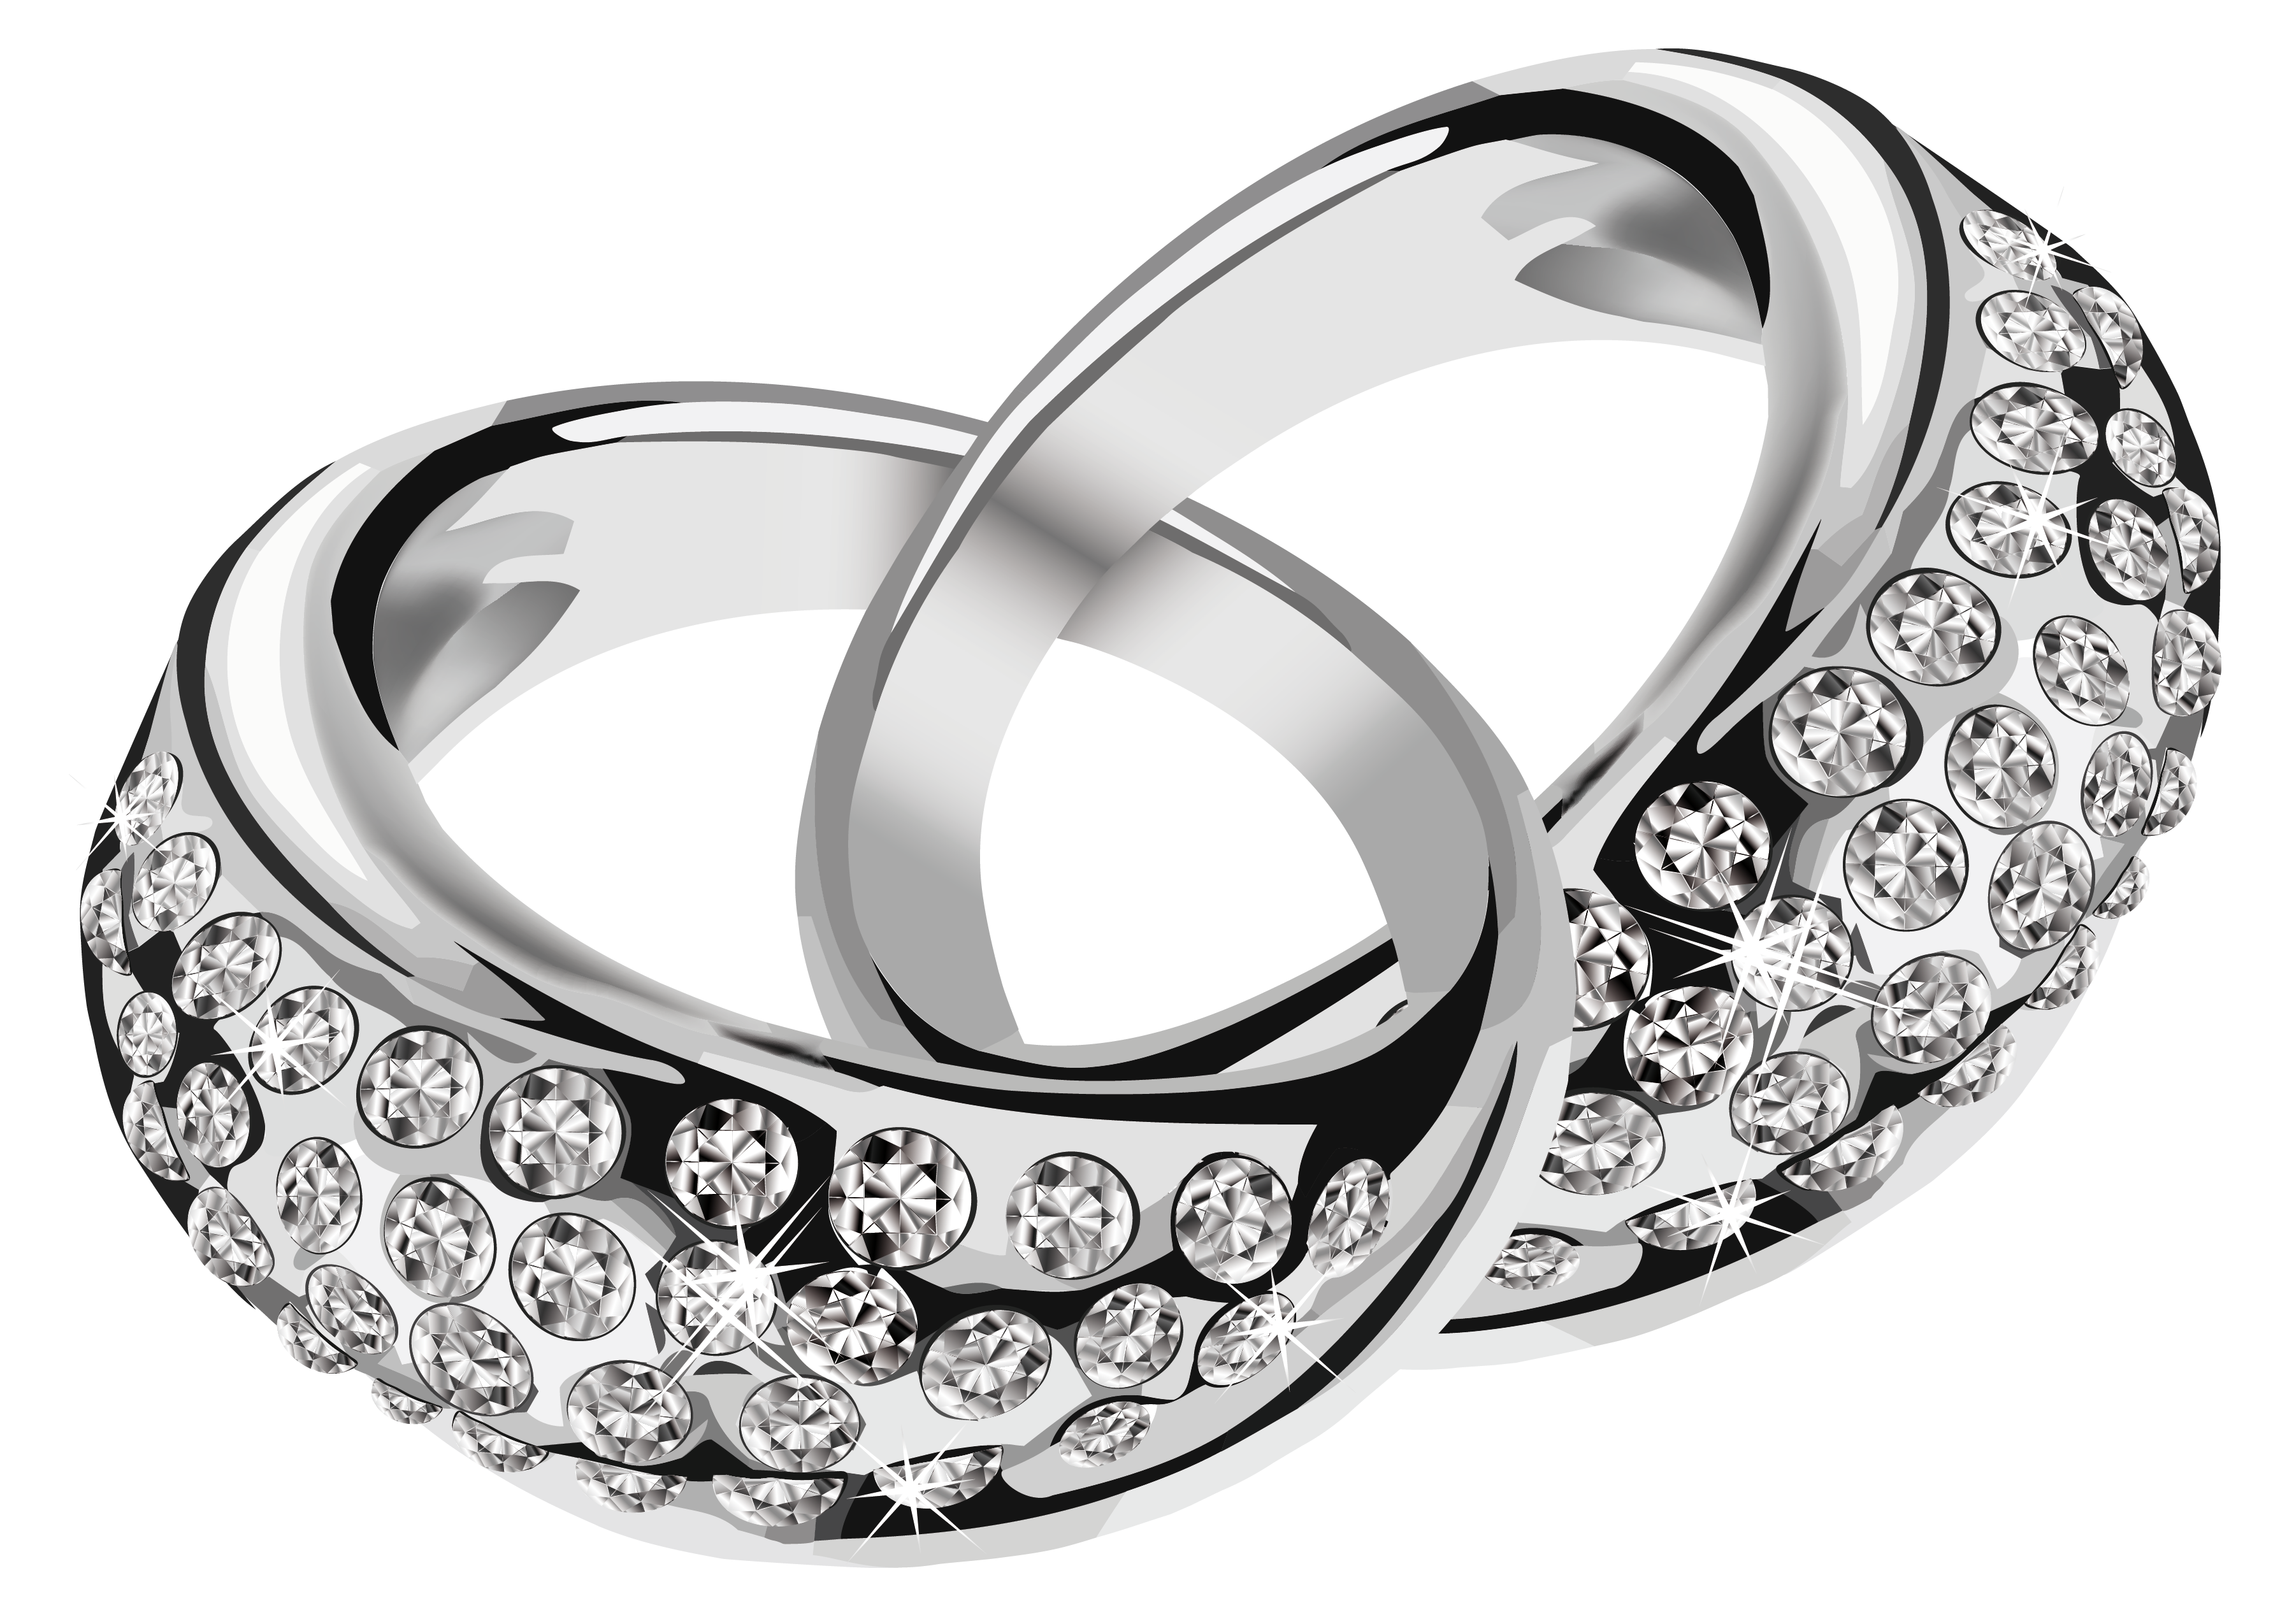 Awesome Wedding Ring Clipart